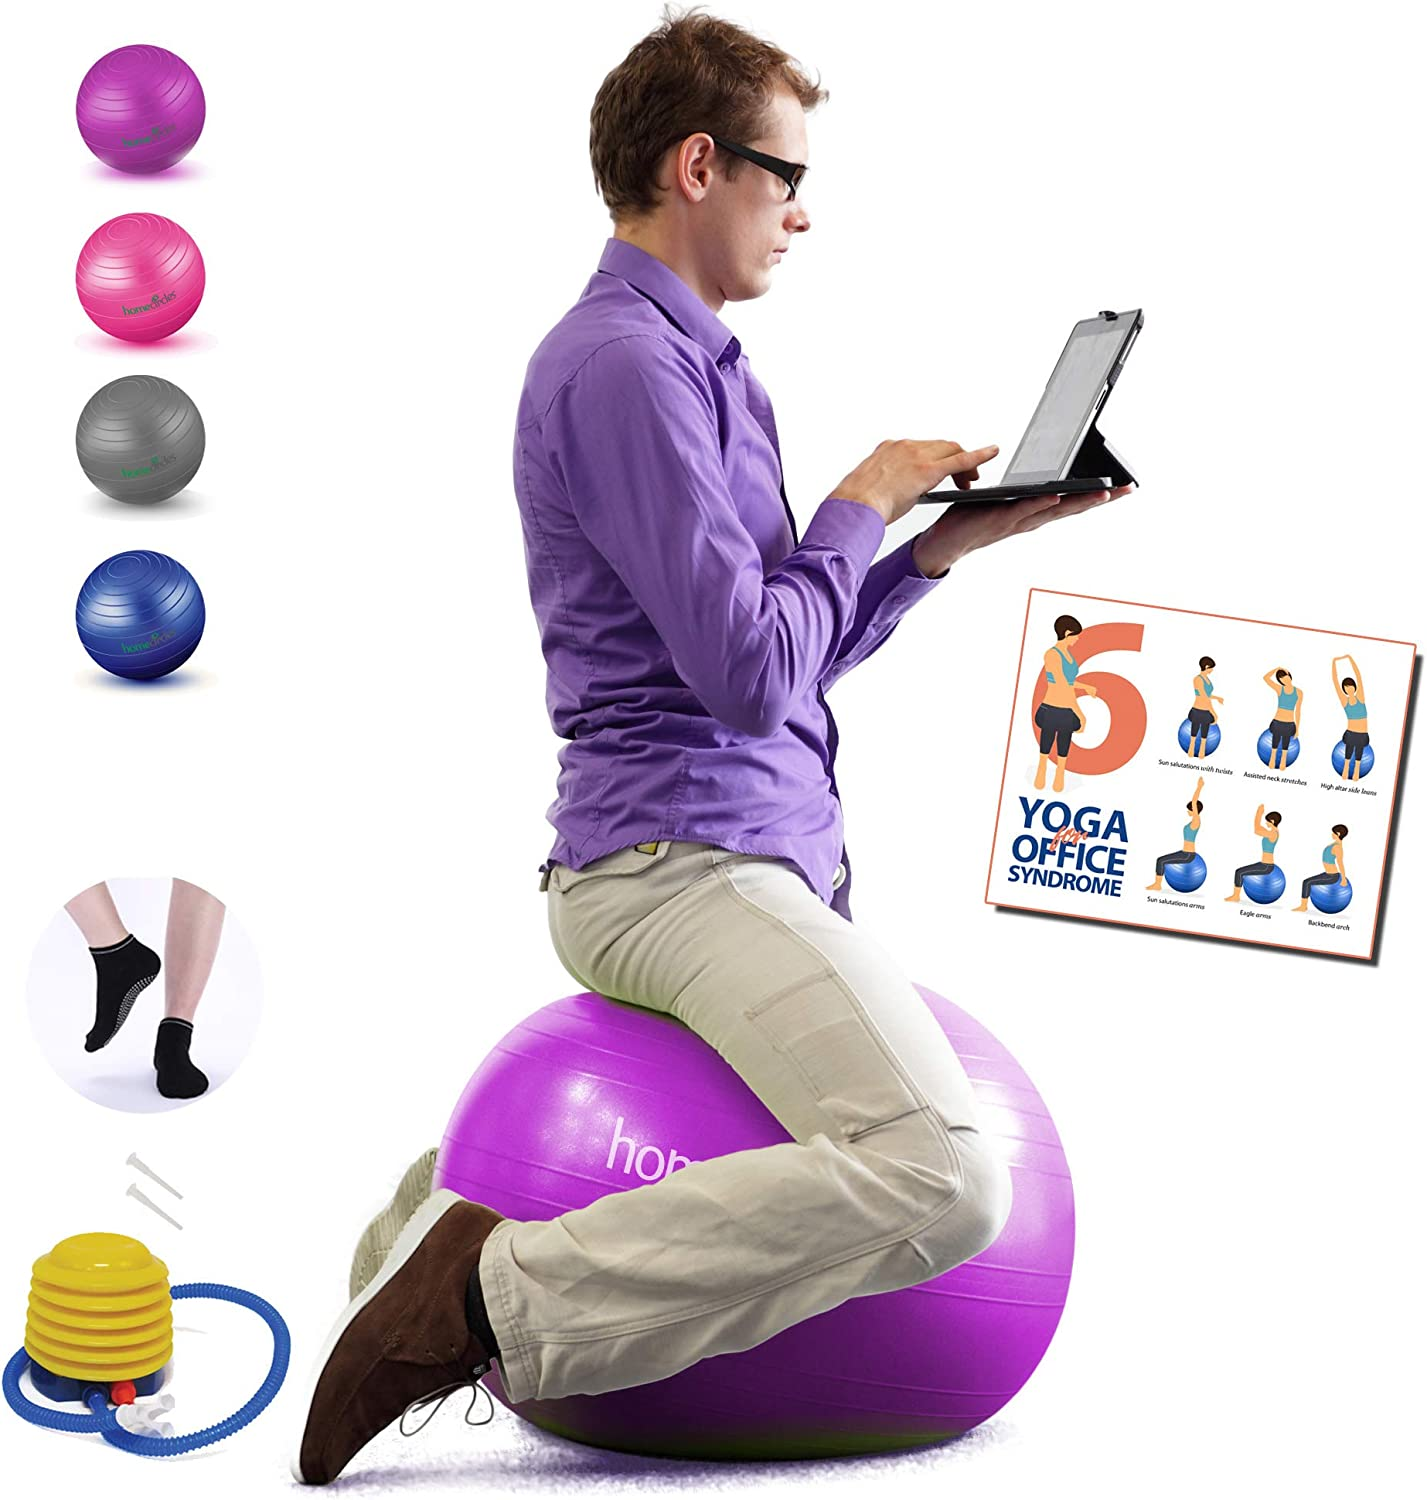 Homecircles No Roll Yoga Ball Chairs for The Office - 65cm Premier Anti-Burst Yogaball - with Grip Socks & PDF Exercise Ball Guide, Gym Quality Balance & Stability Ball Chair for Office